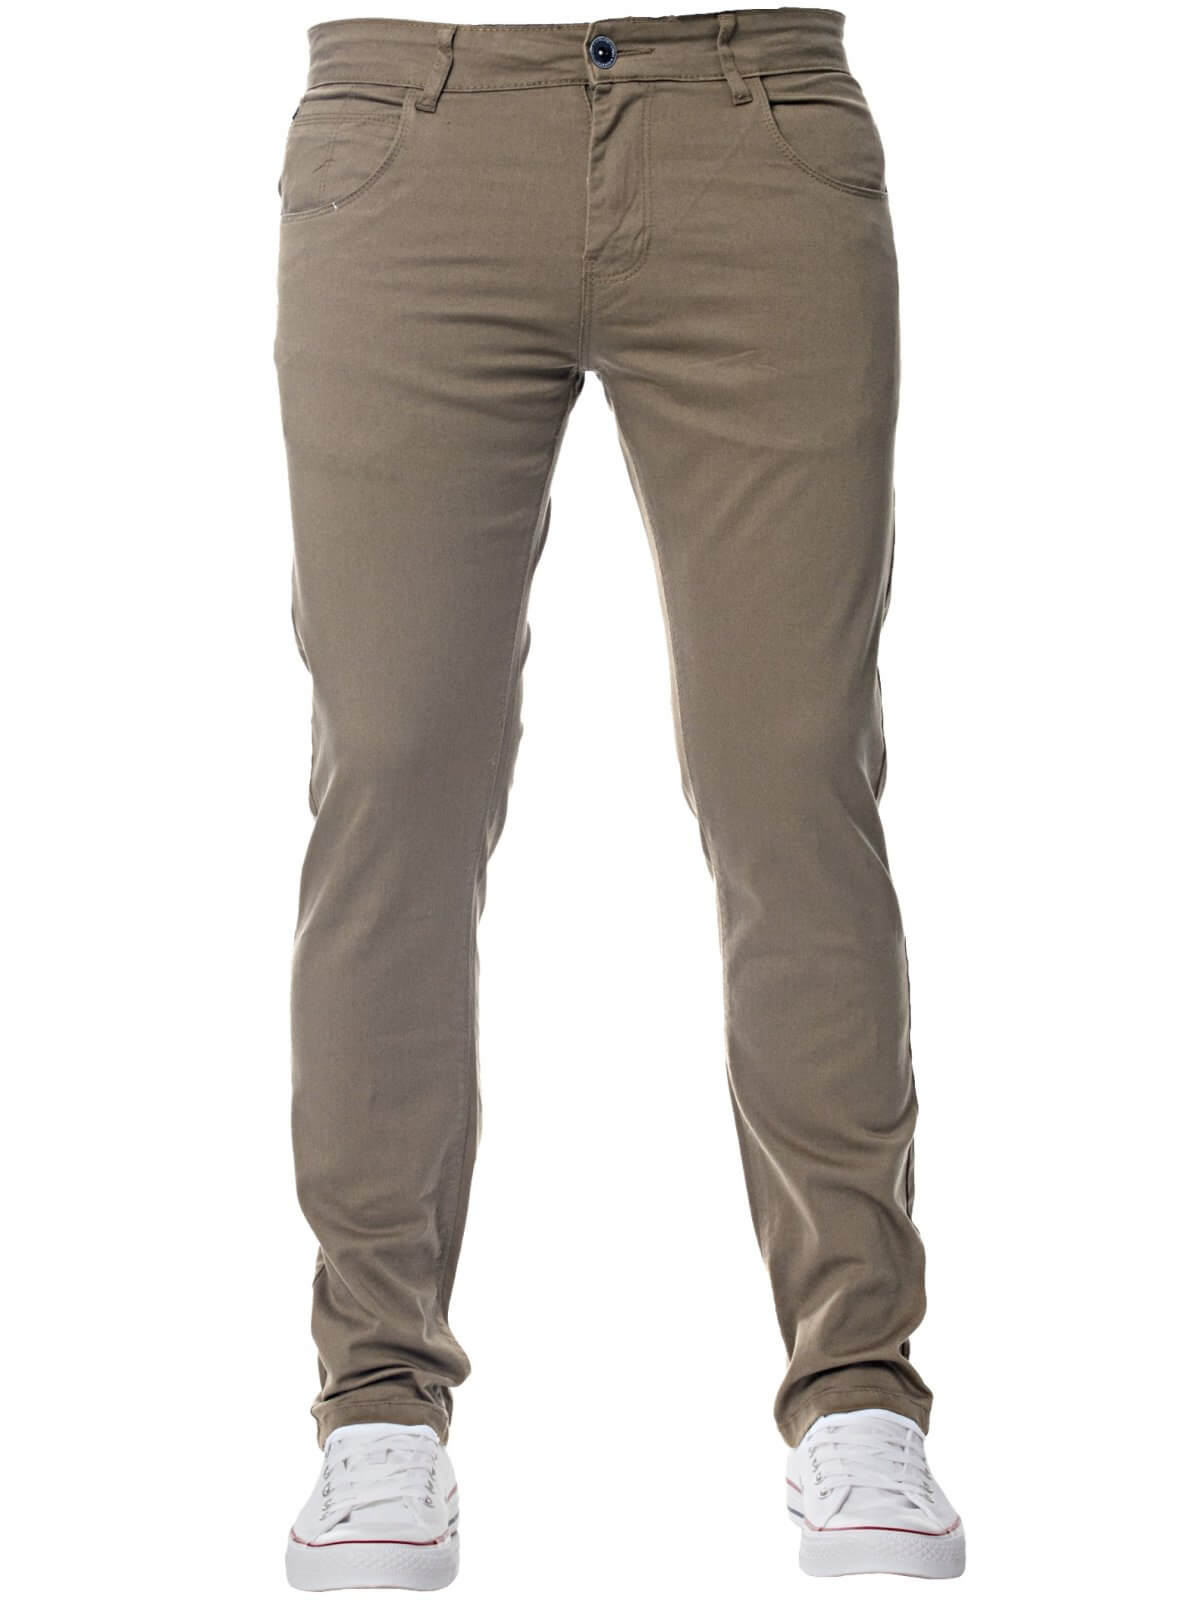 Mens Slim Fit Stretch Chinos Available In 8 Colours | Kruze Designer Menswear